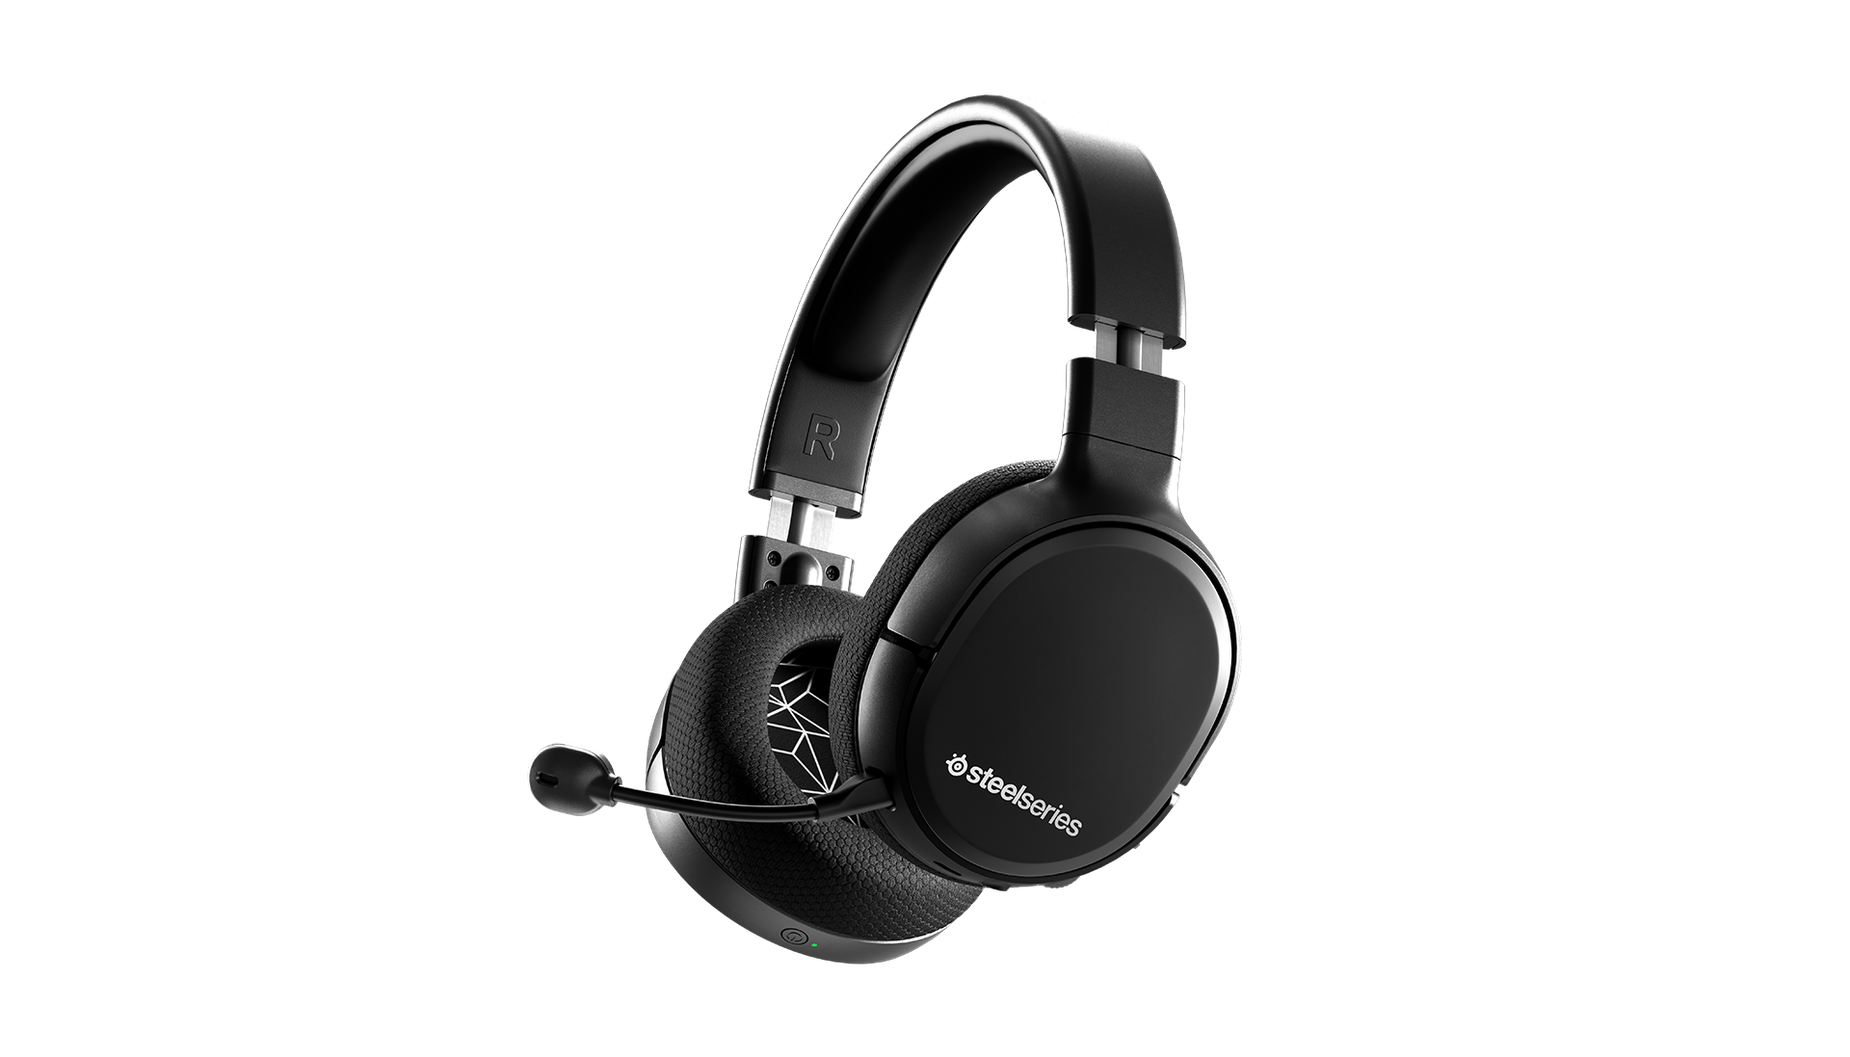 A black Arctis 1 Wireless headset on a blank background